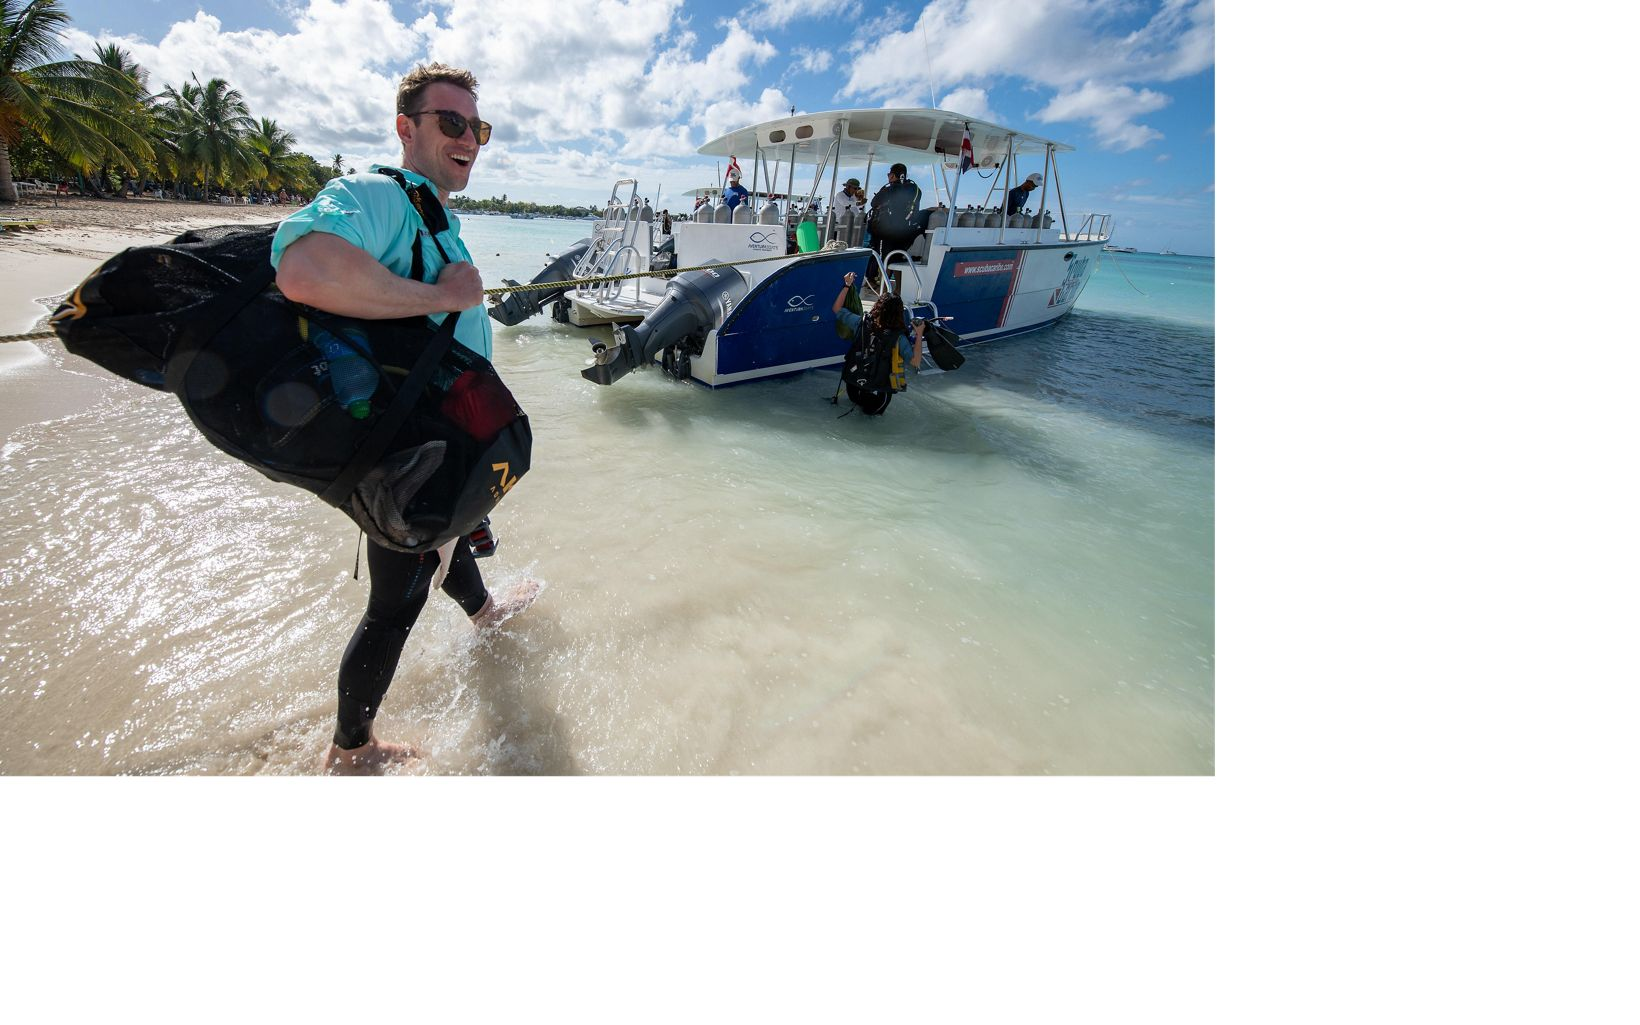 Joe Pollock, Coral Strategy Director, heads to the boat for a dive off the coast of the Dominican Republic.